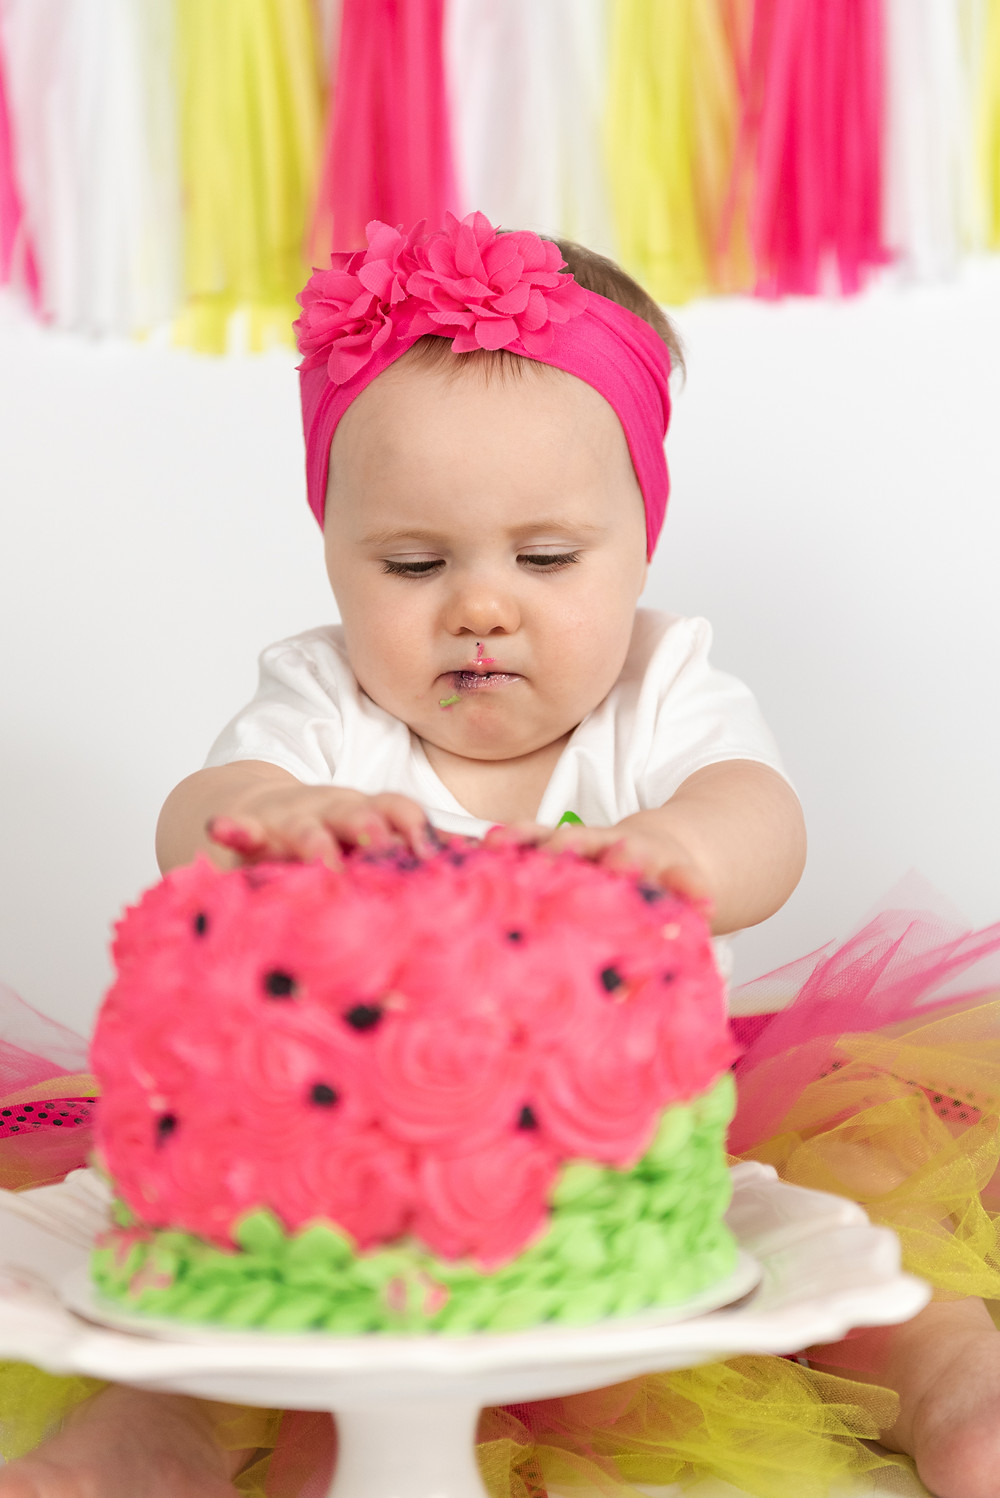 One year old girl diggin into her smash cake during photoshoot